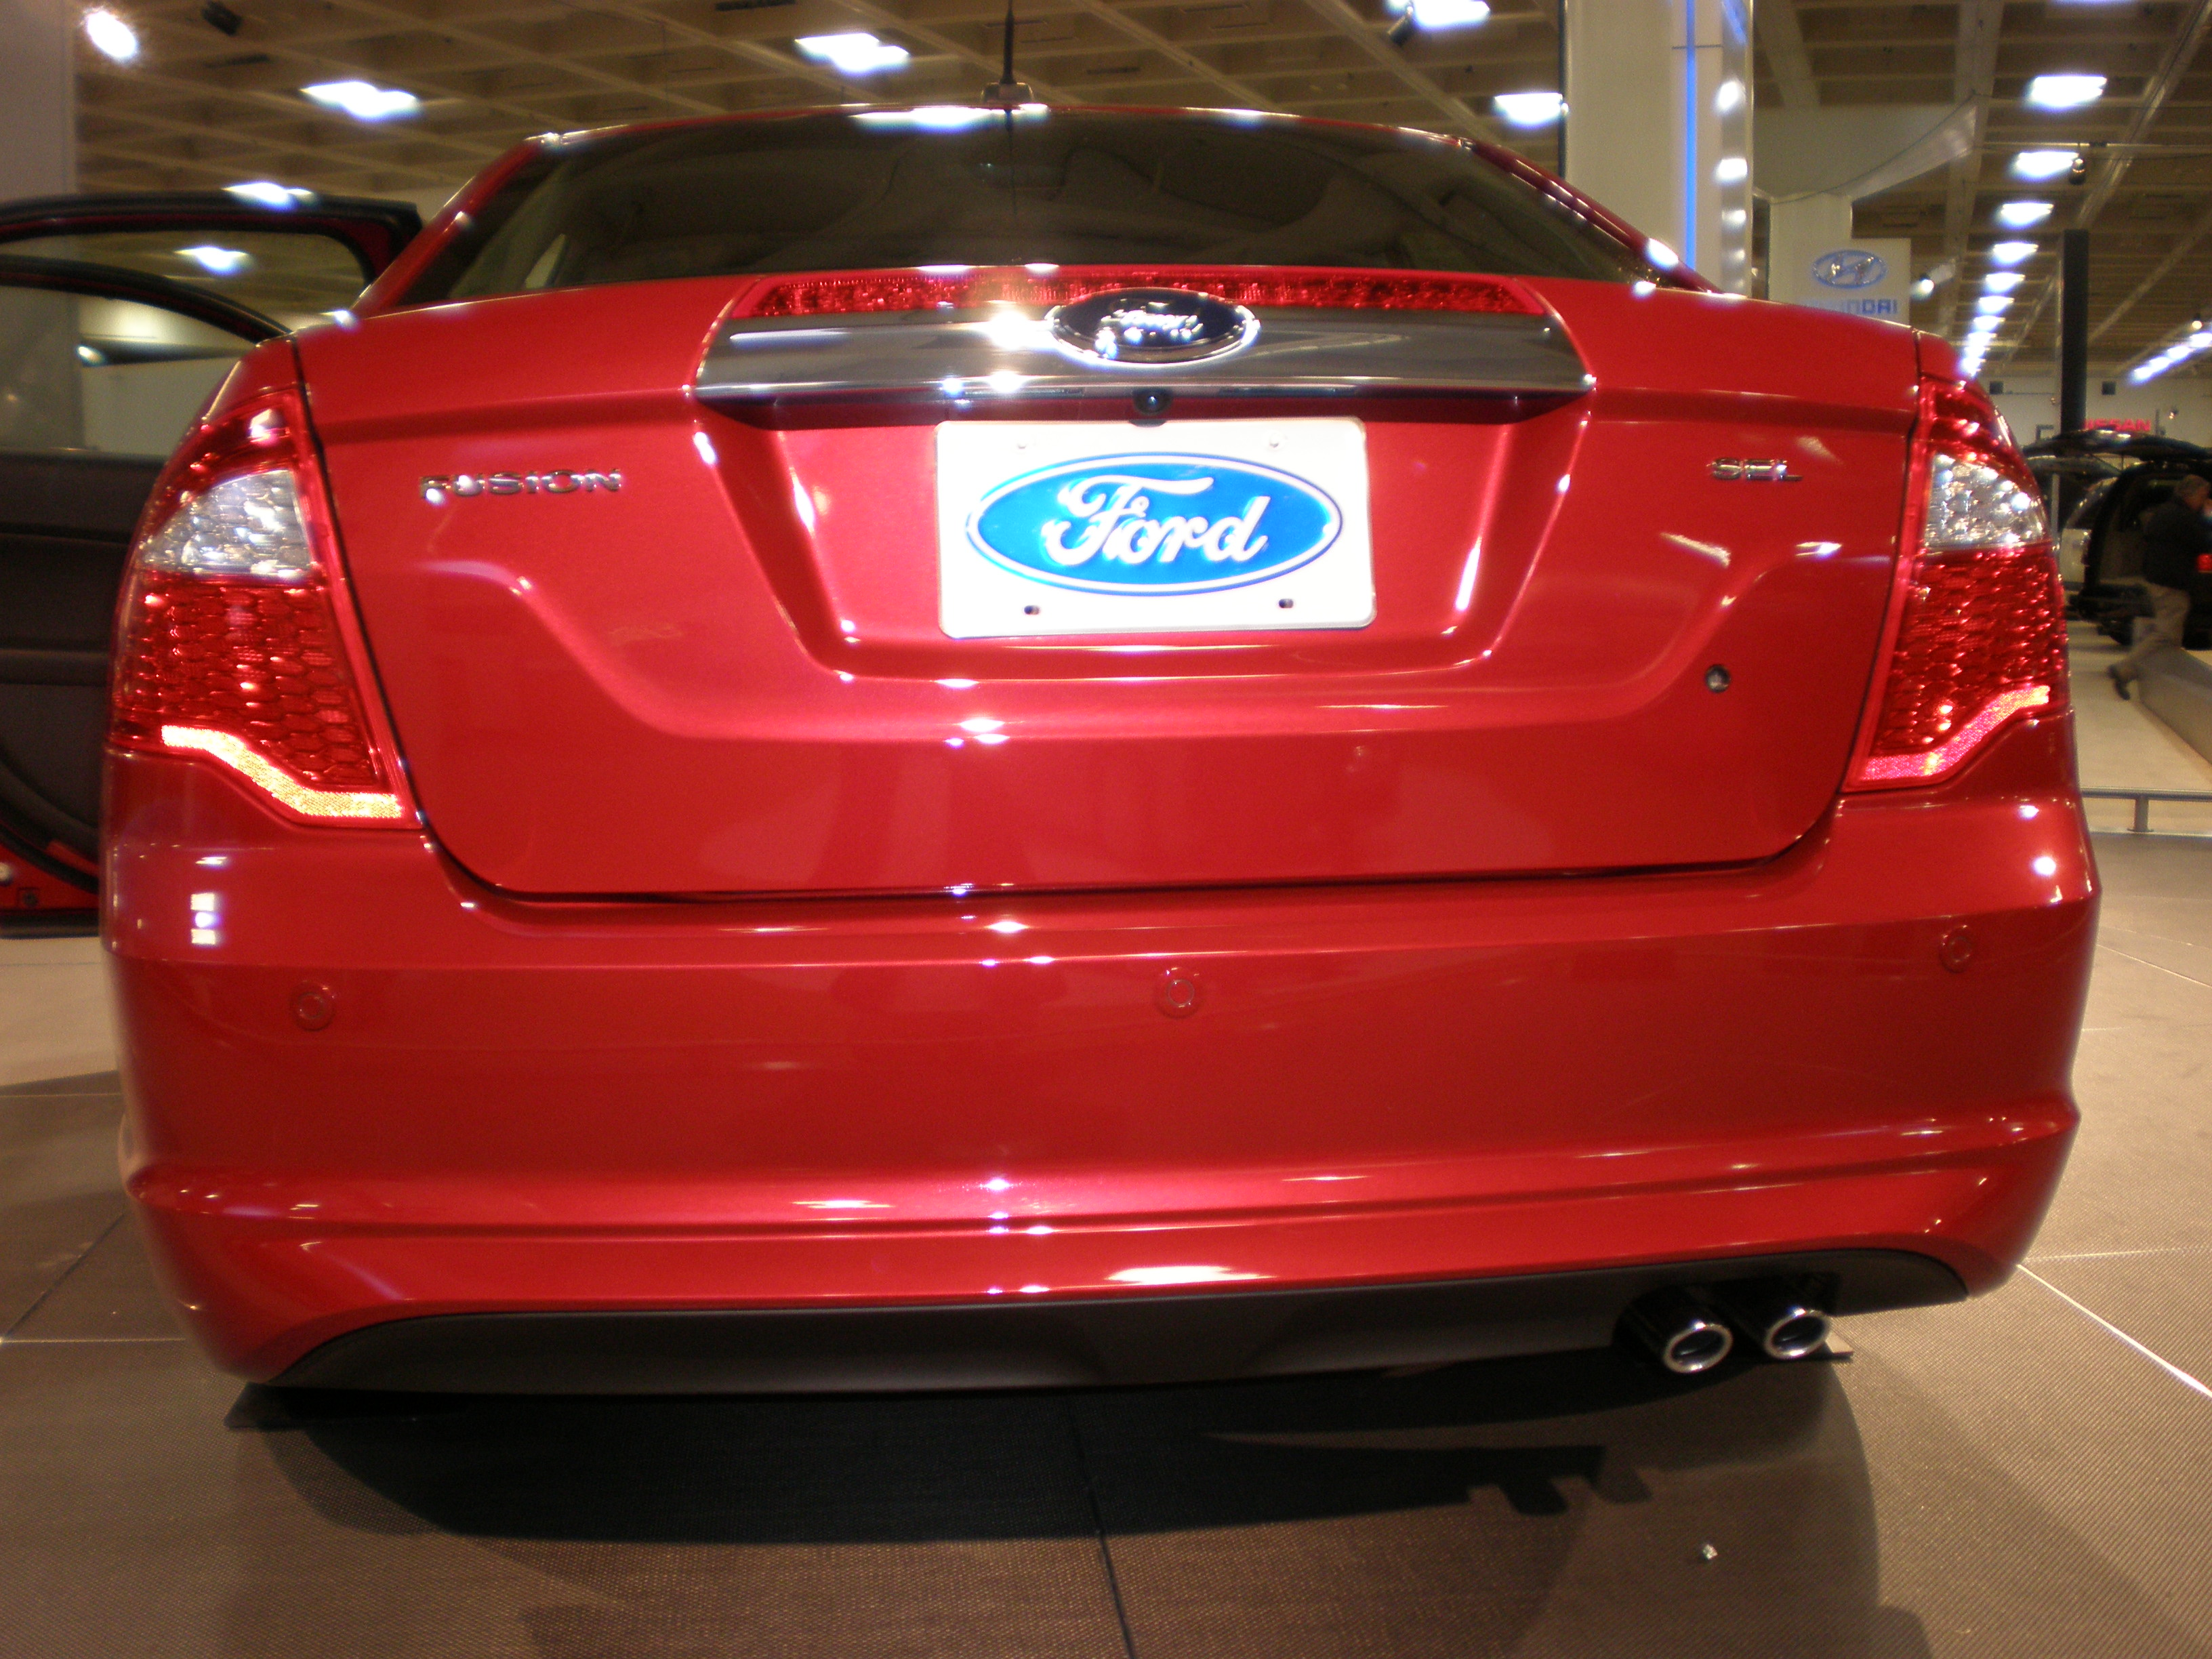 File:2010 red Ford Fusion rear.JPG - Wikimedia Commons